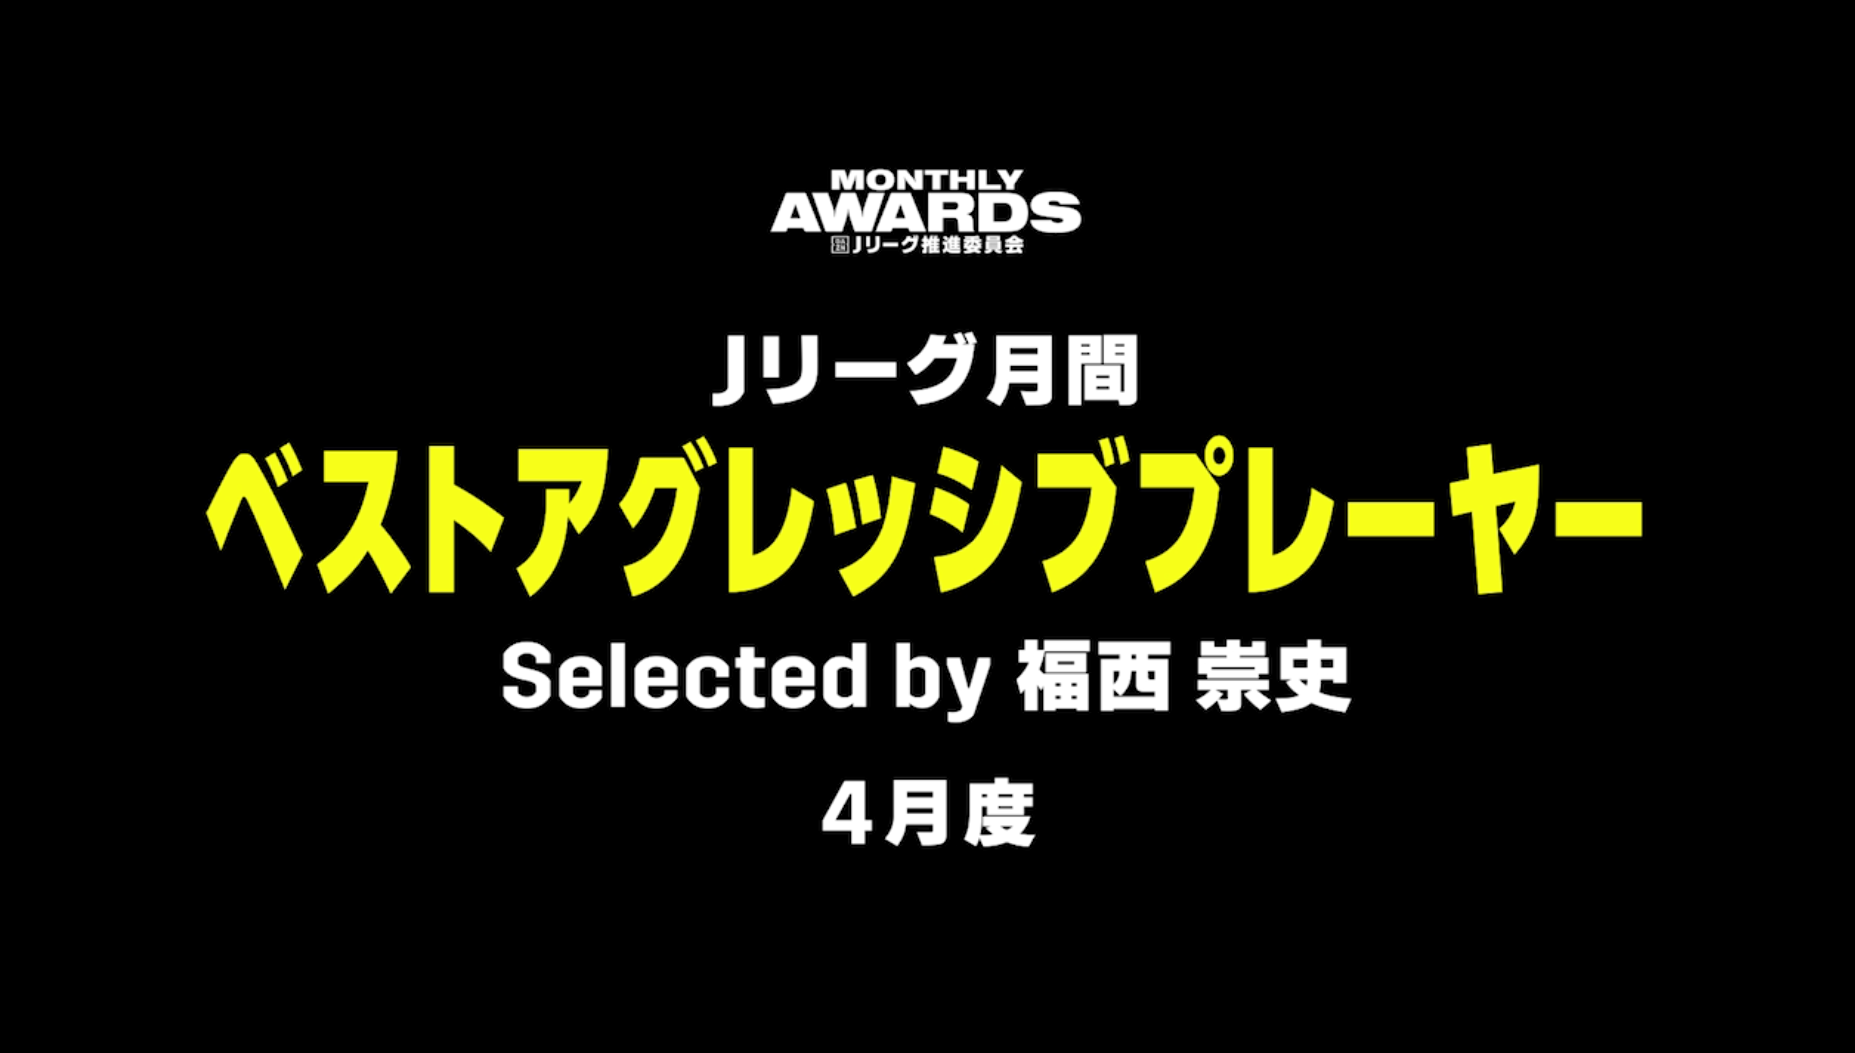 Jリーグ月間ベストアグレッシブプレーヤー Selected by 福西崇史 4月度 - 横浜FM 前田大然